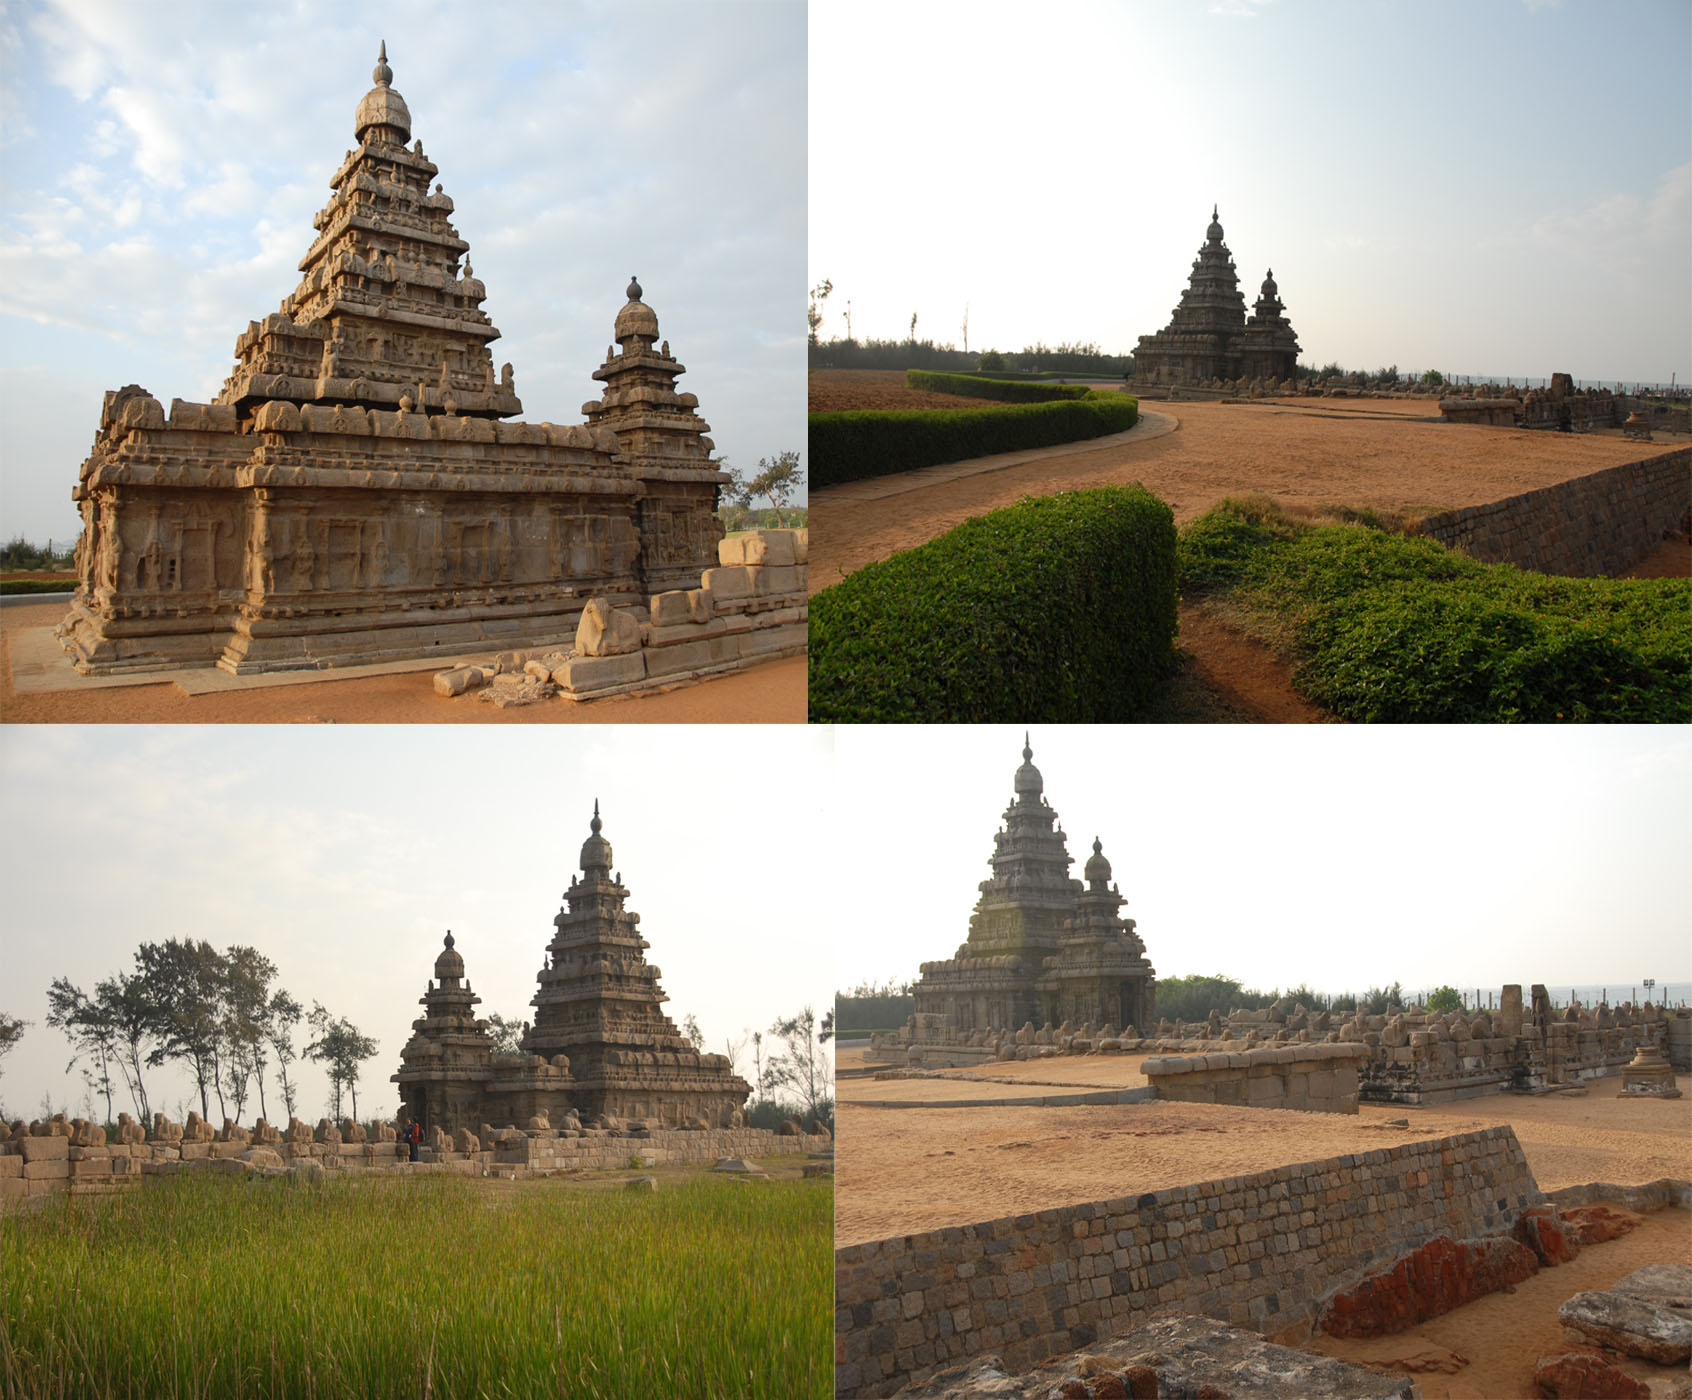 View of Shore Temple, Mahabalipuram / Mamallapuram